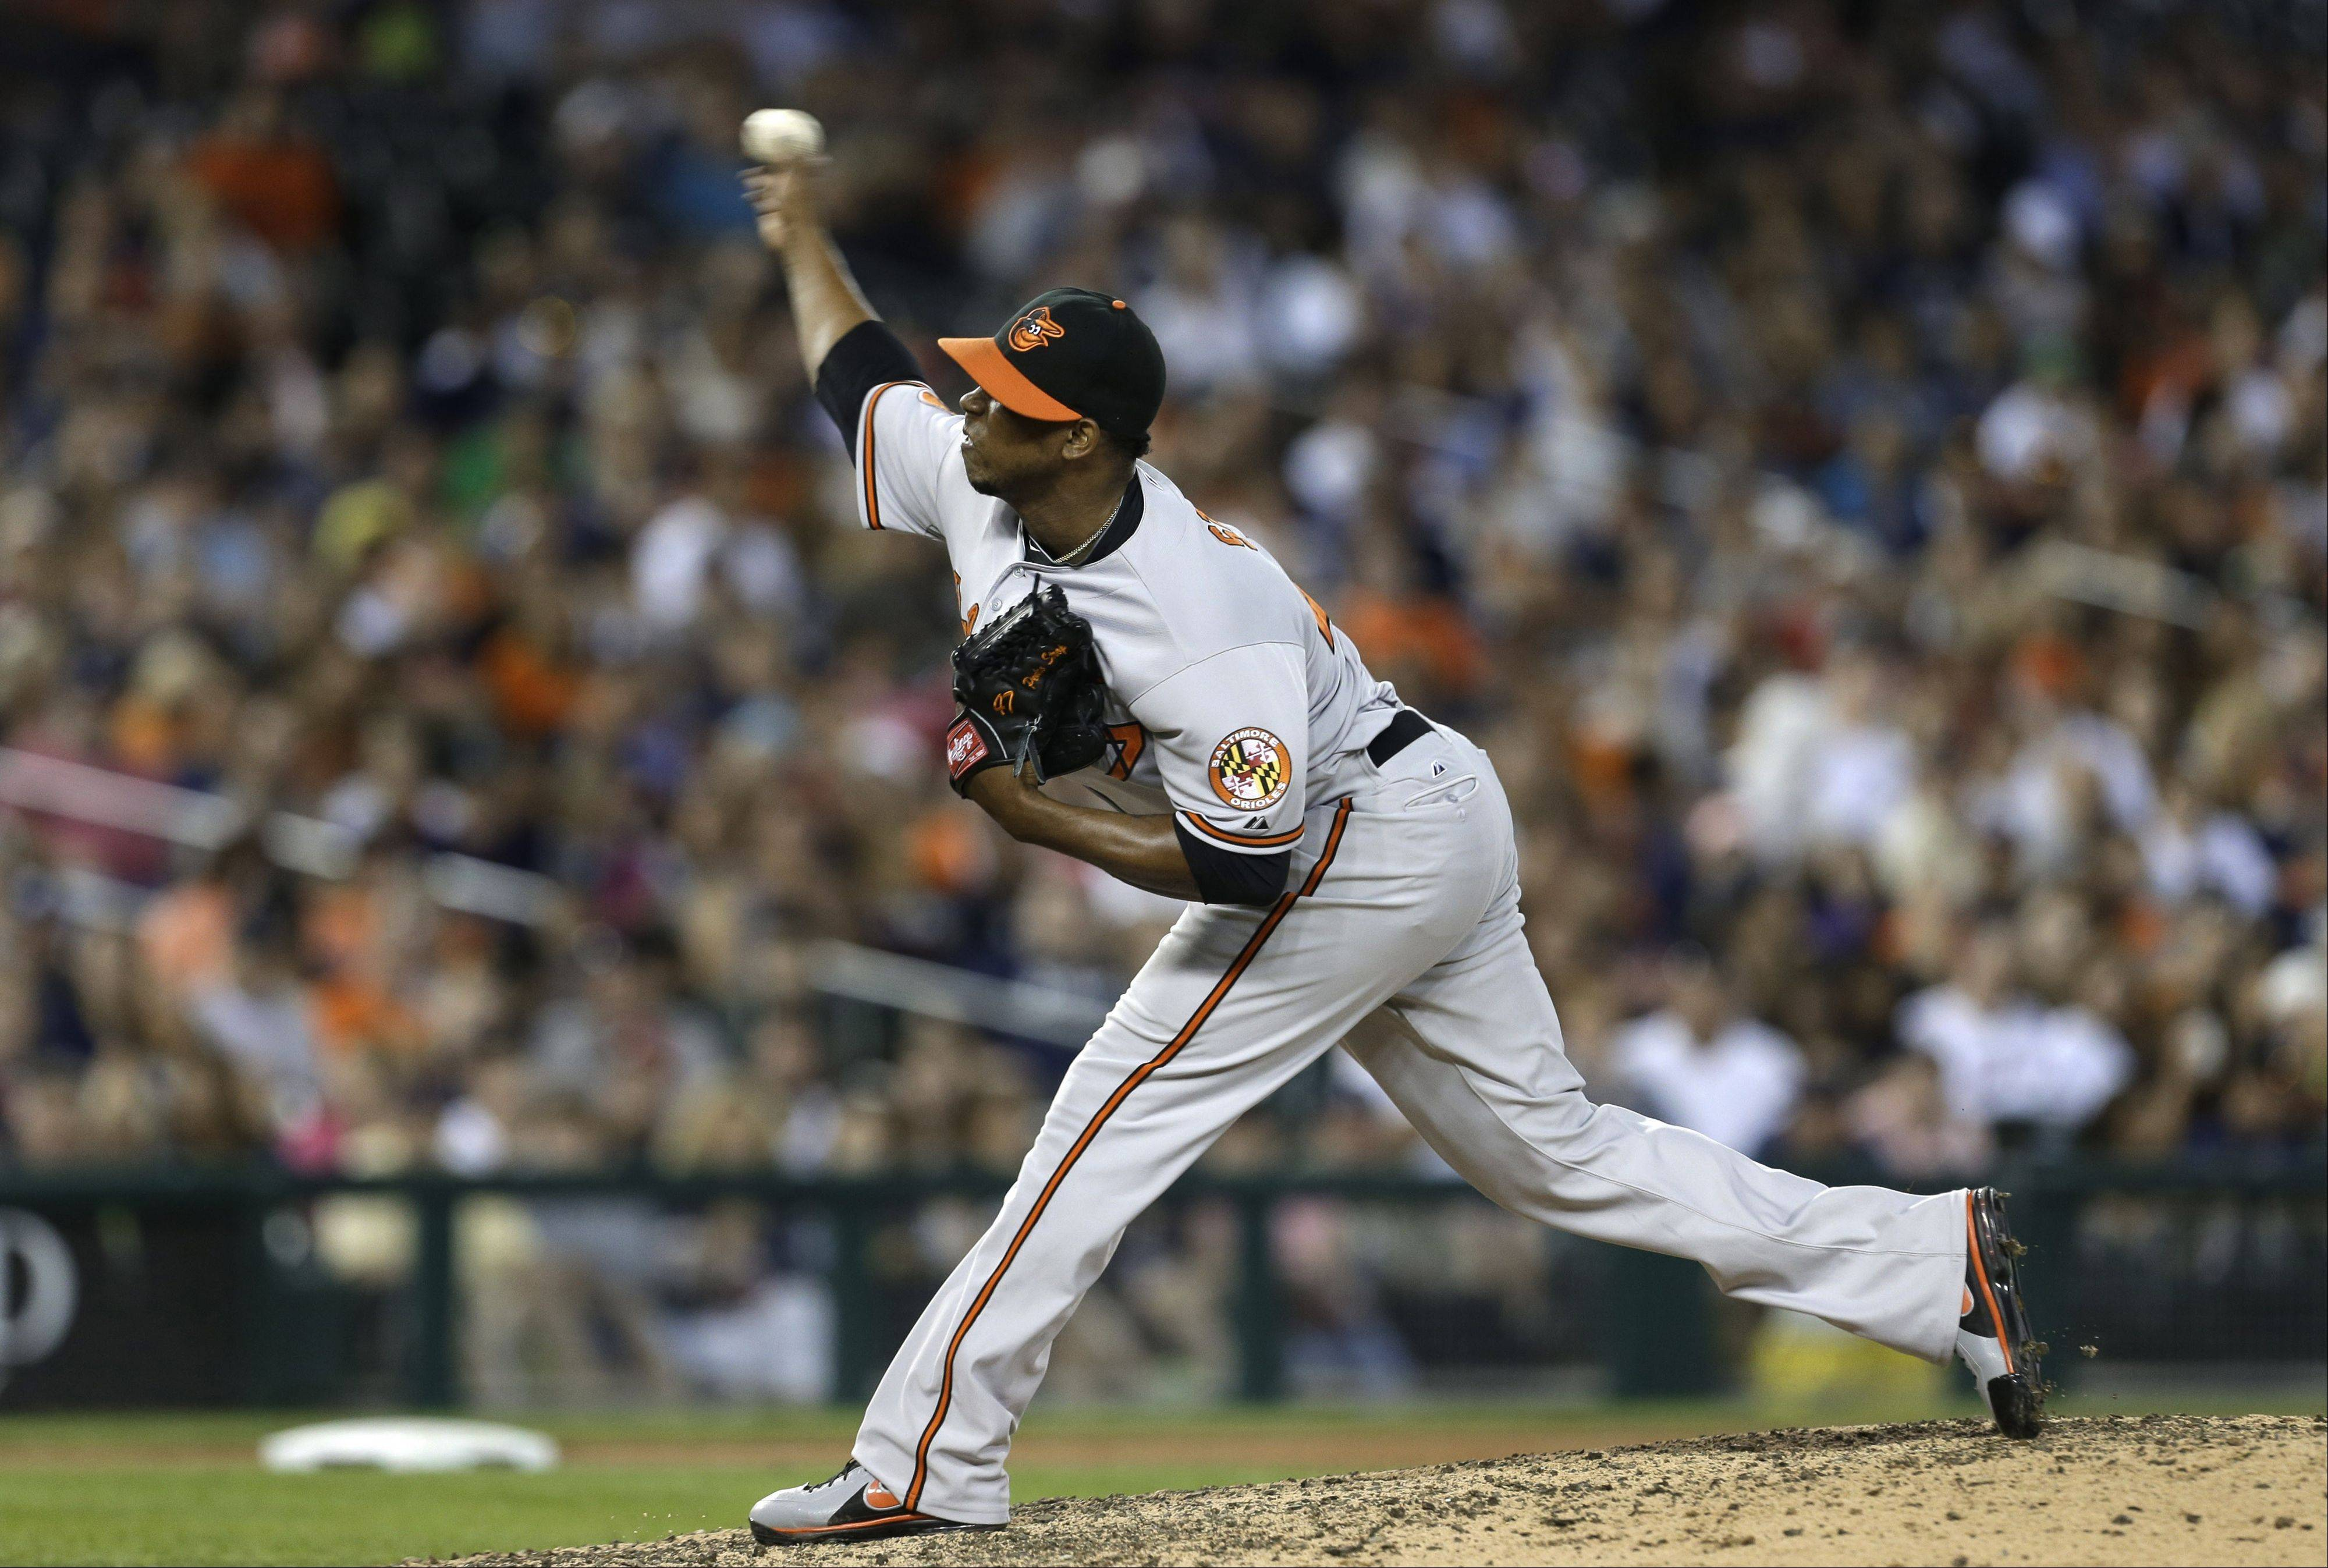 The Cubs acquired pitcher Pedro Strop from the Baltimore Orioles in a deal announced Tuesday.